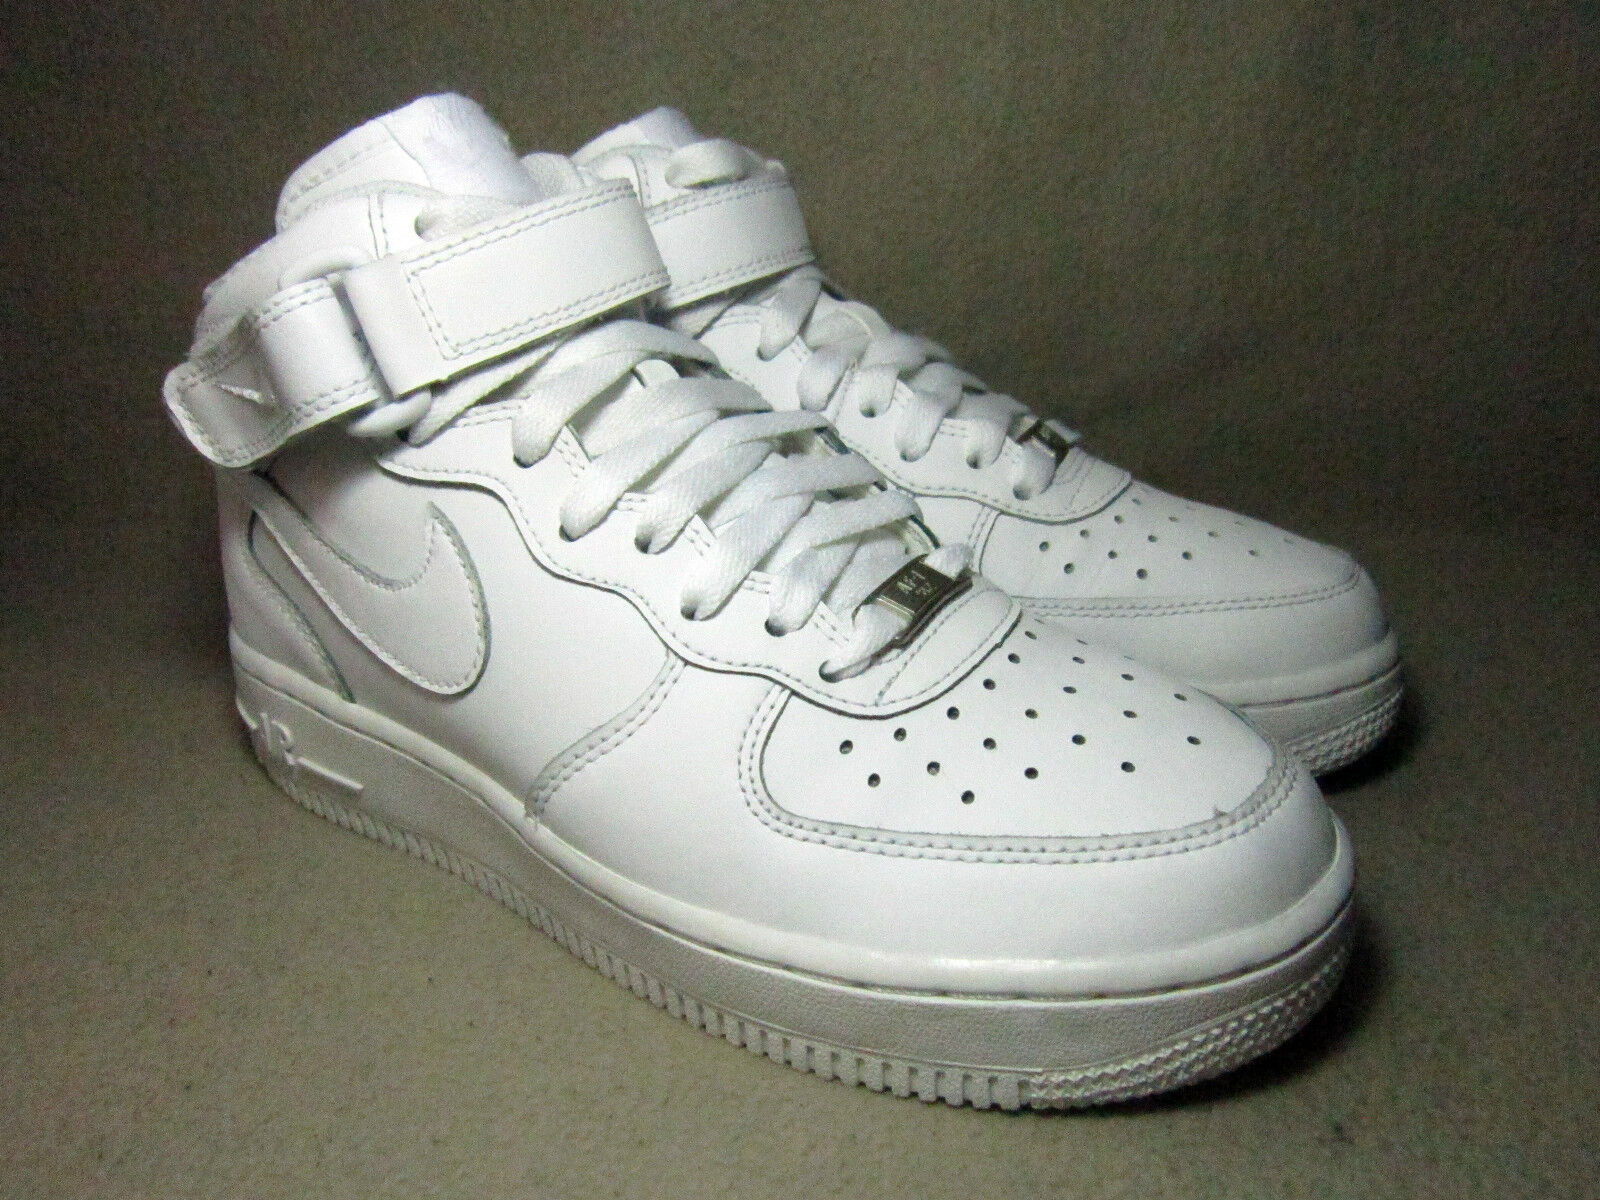 VGC NIKE AIR Obliger 1 MID 36.5 Junior blanc Leather Trainers4/EU 36.5 MID 24f946